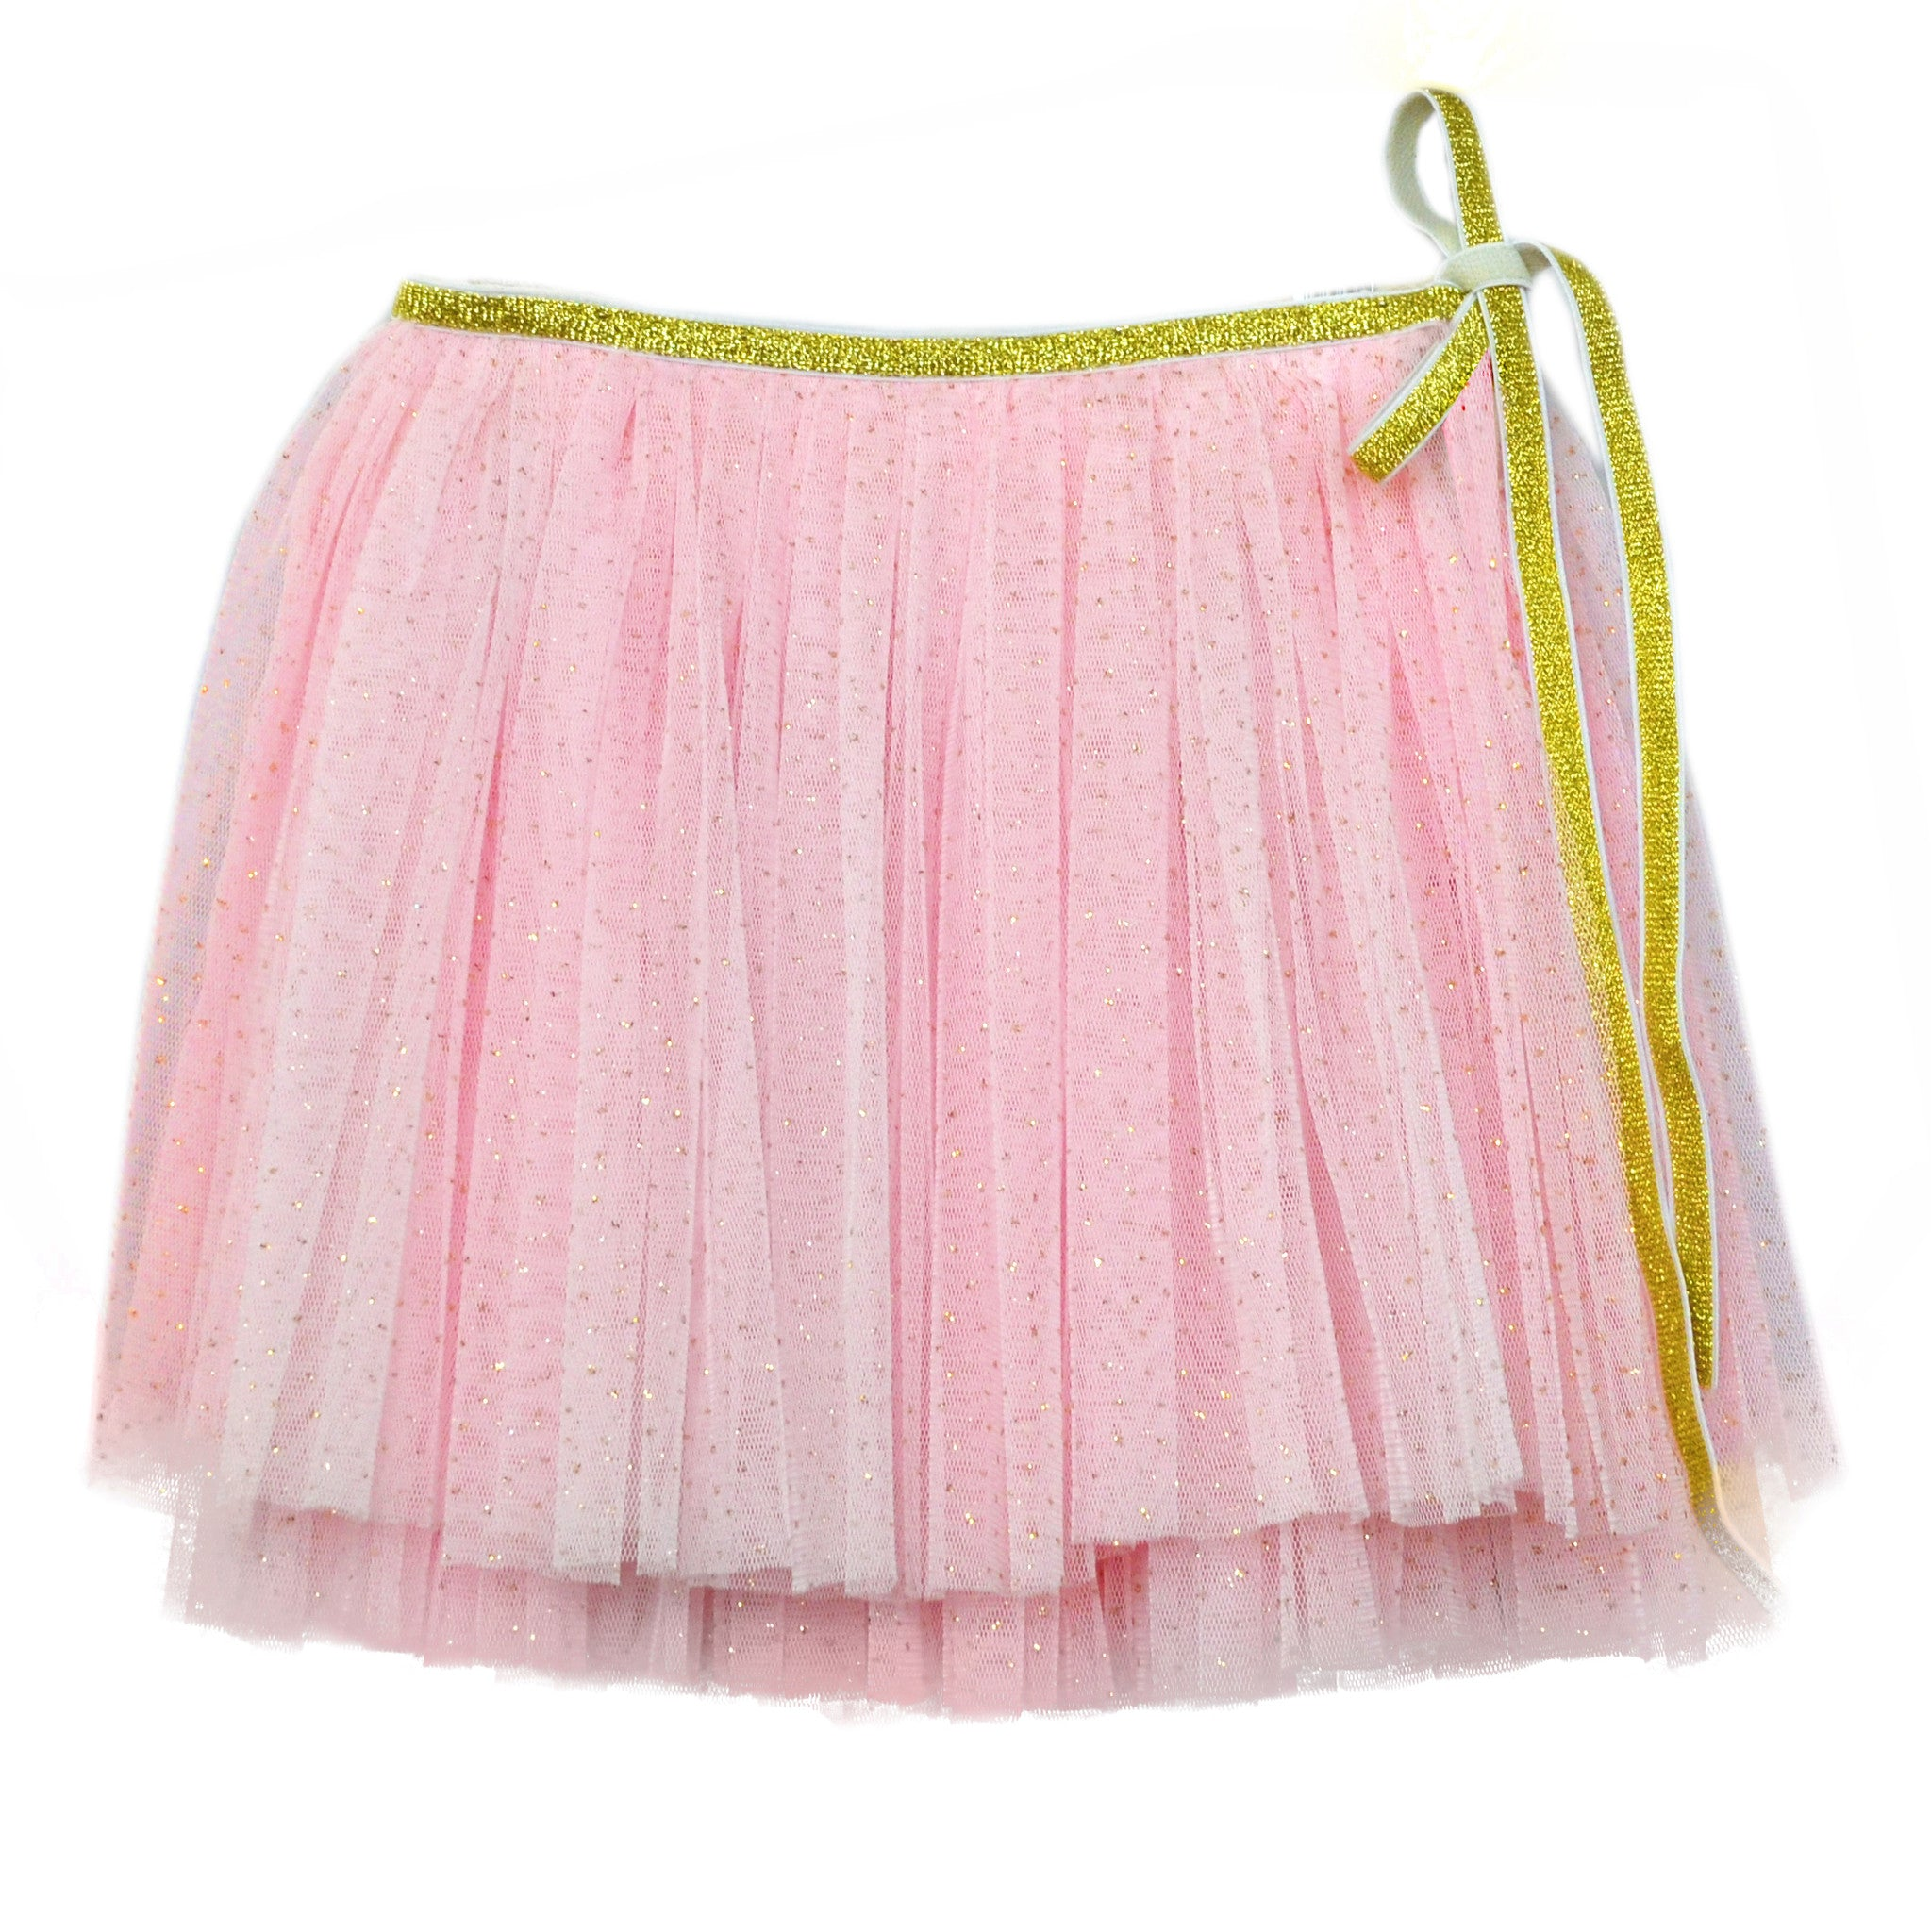 Oh Baby! Glinda Wrap Skirt   Light Pink/Gold   Oh Baby! Ideas